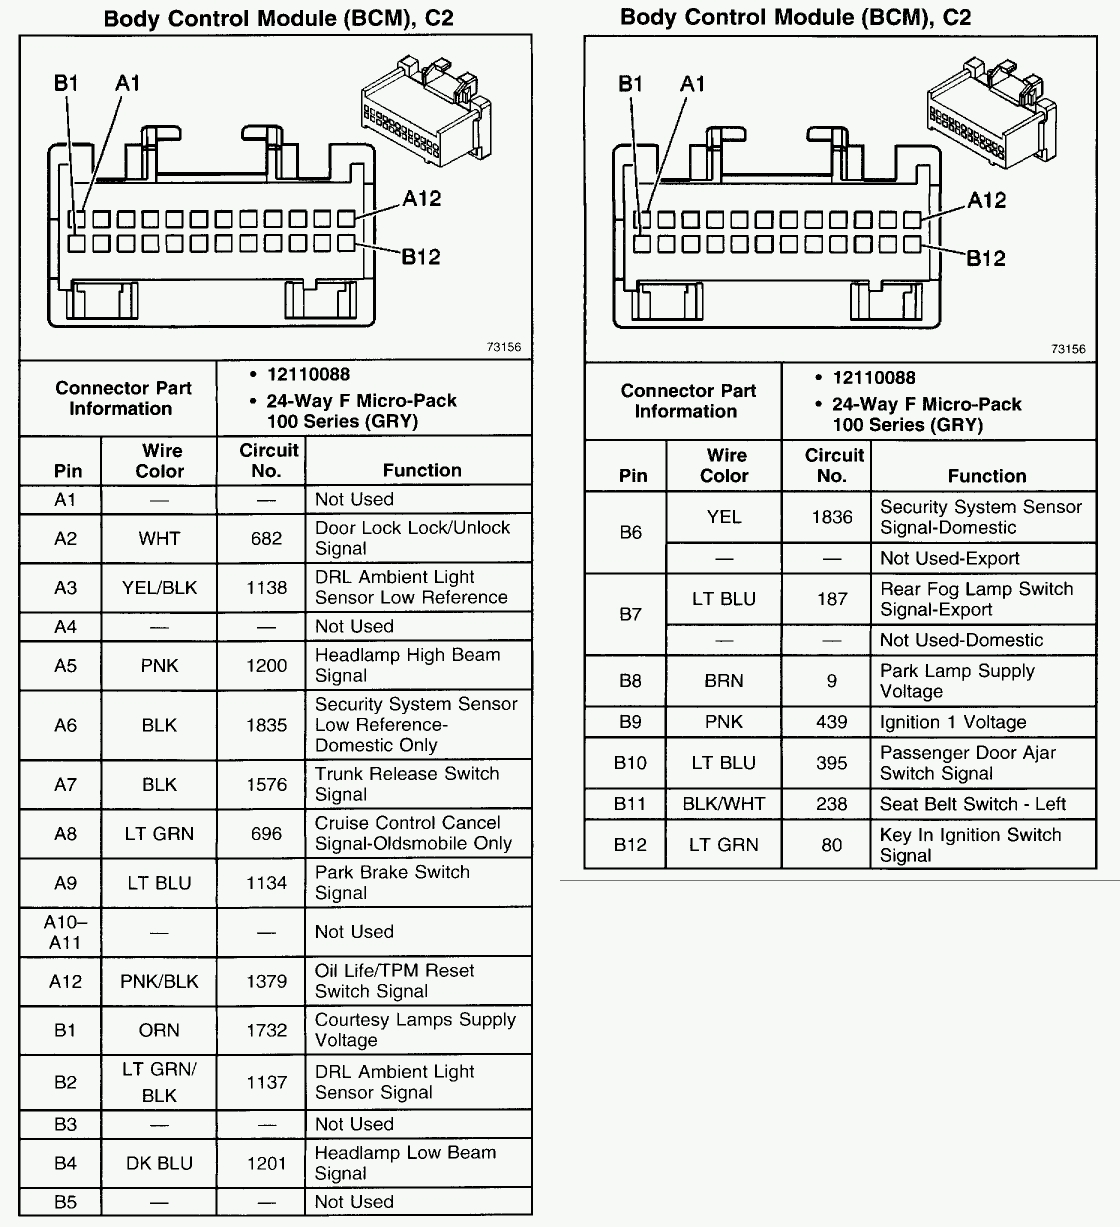 Pontiac Grand Prix Radio Wiring Diagram 2013 07 17 171026 2000 Dic intended for 2004 Pontiac Grand Prix Parts Diagram